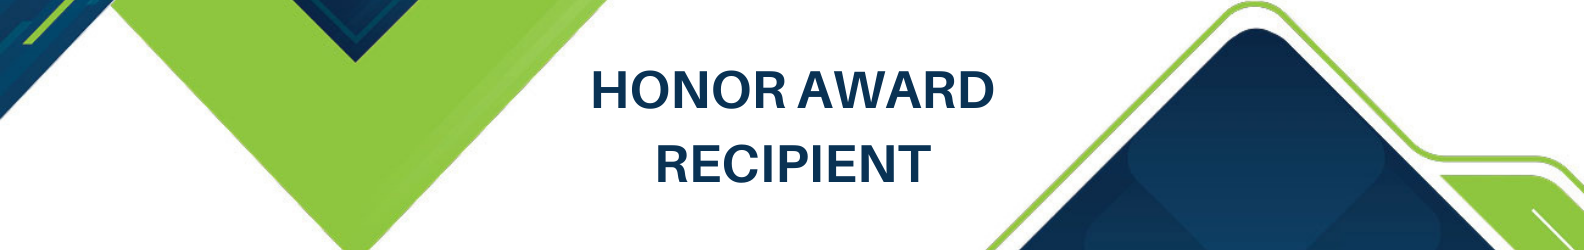 Honor Award Header